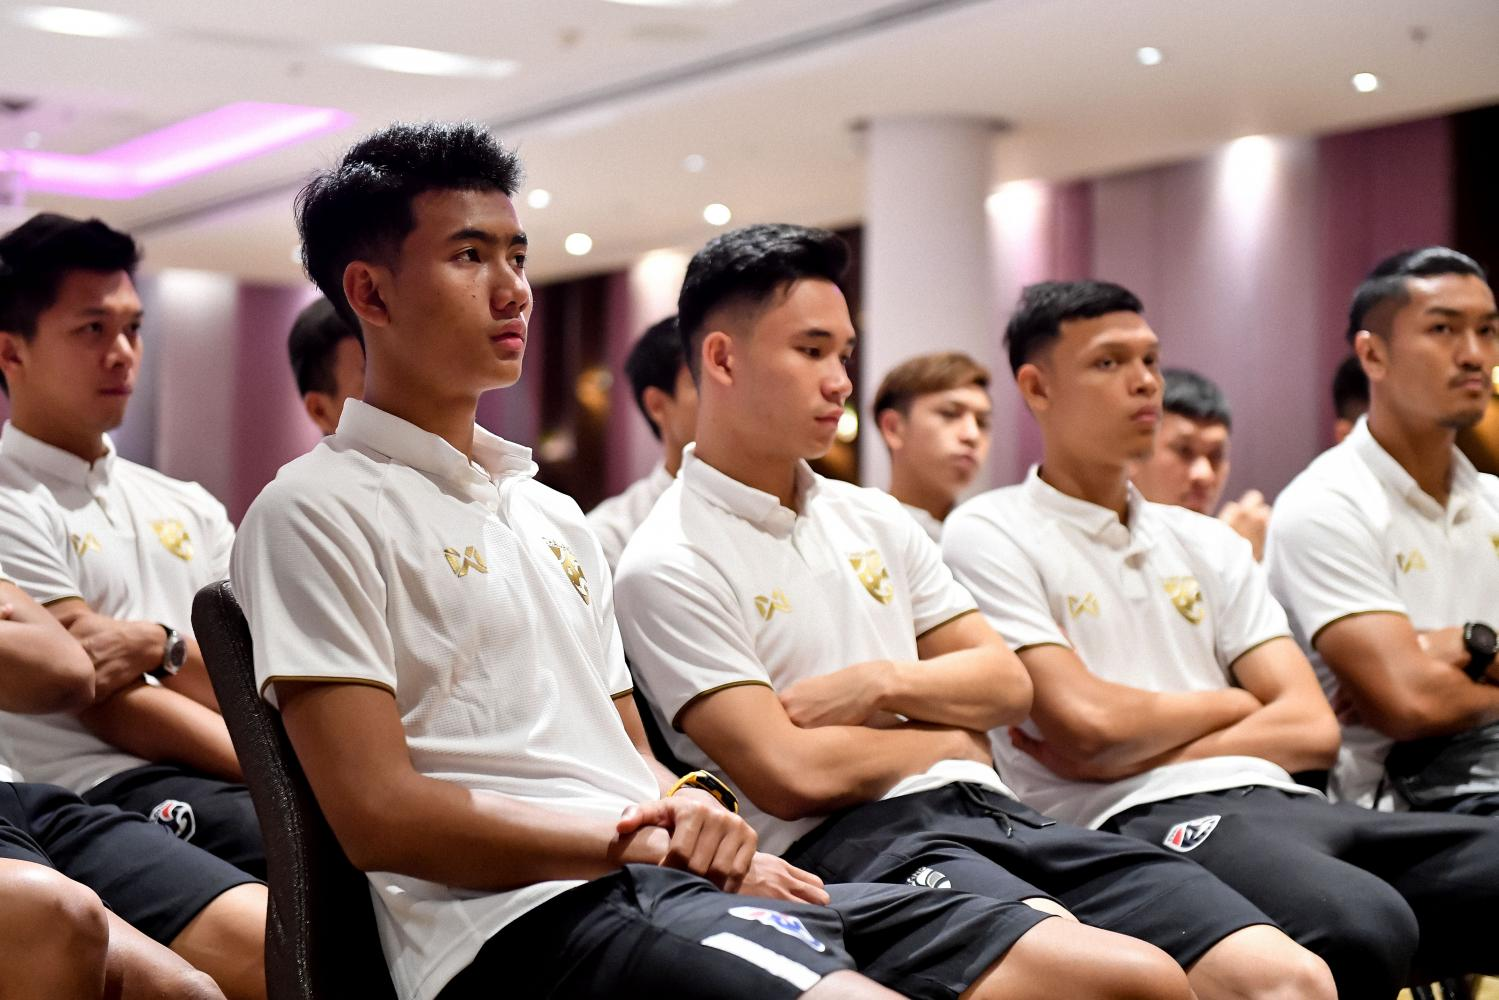 Thailand national team players.